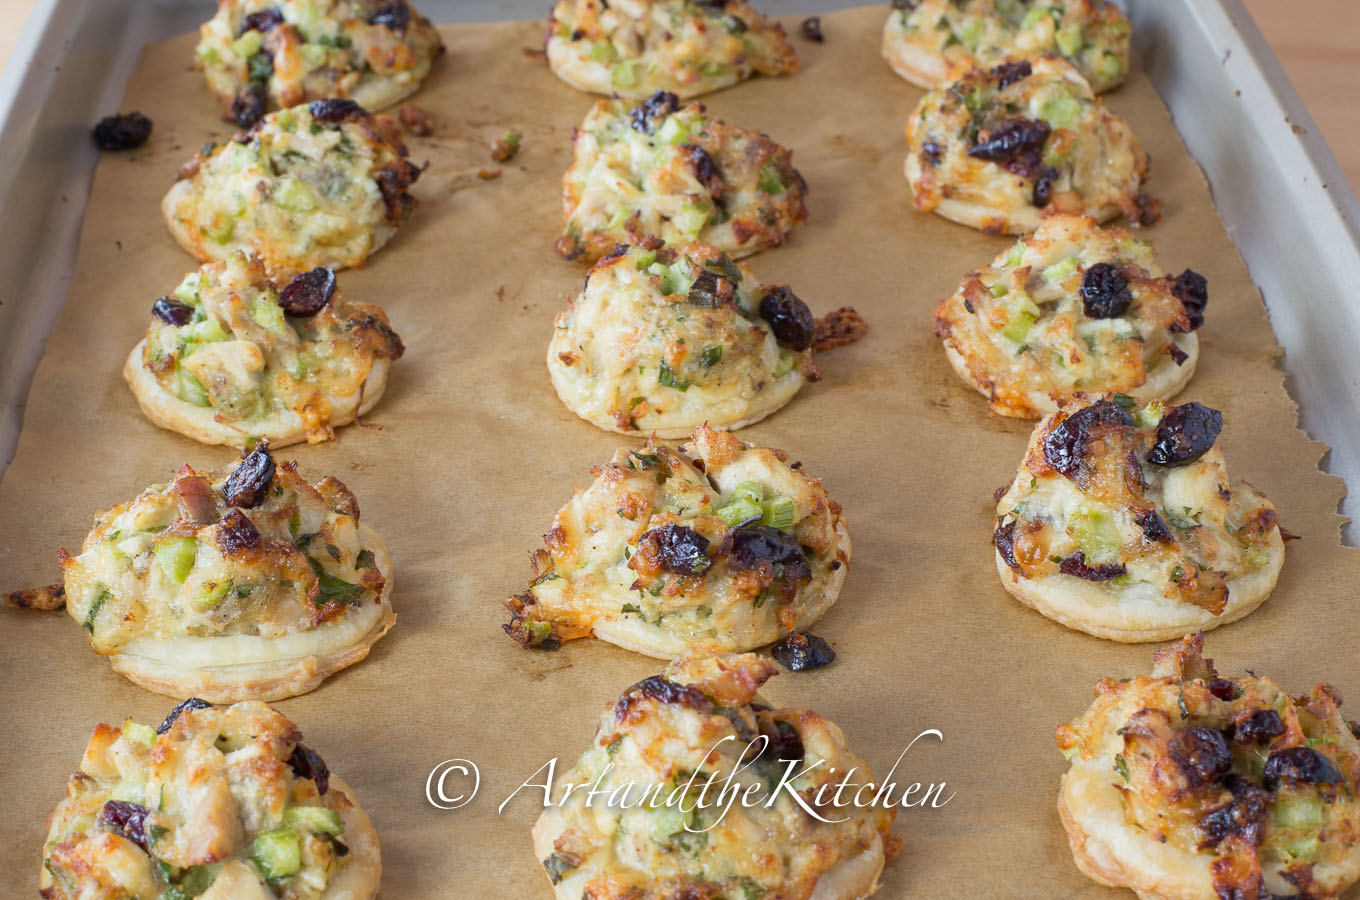 Turkey Cranberry Puff Pastry Bites